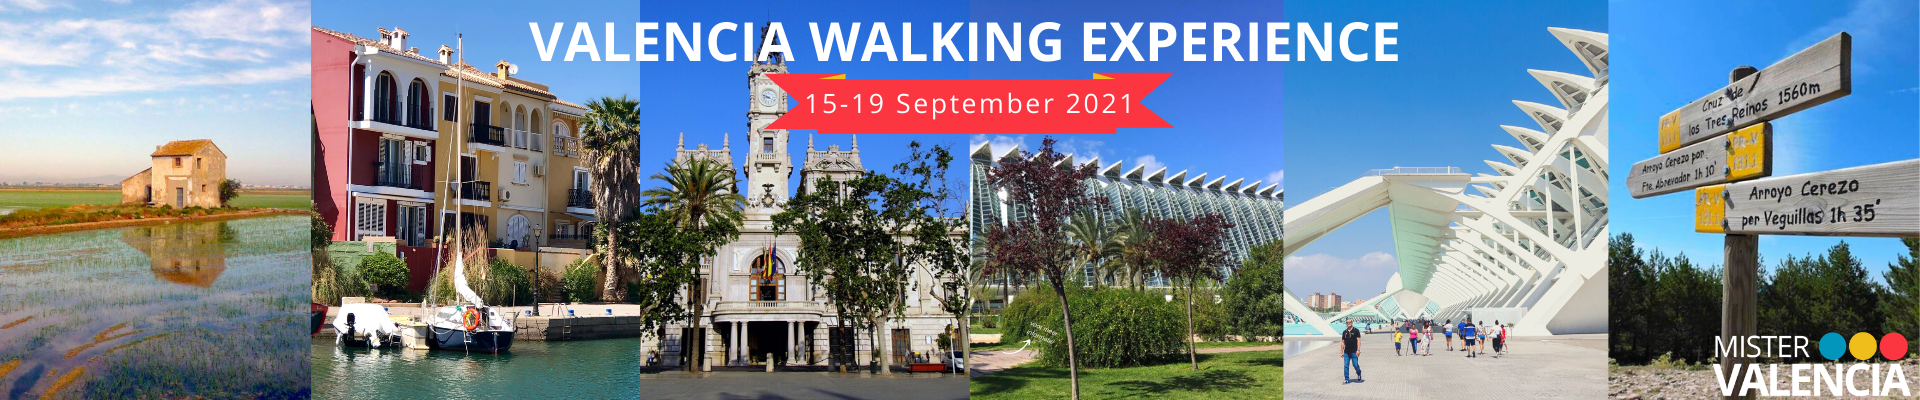 Valencia Walking Experience Sept 2021